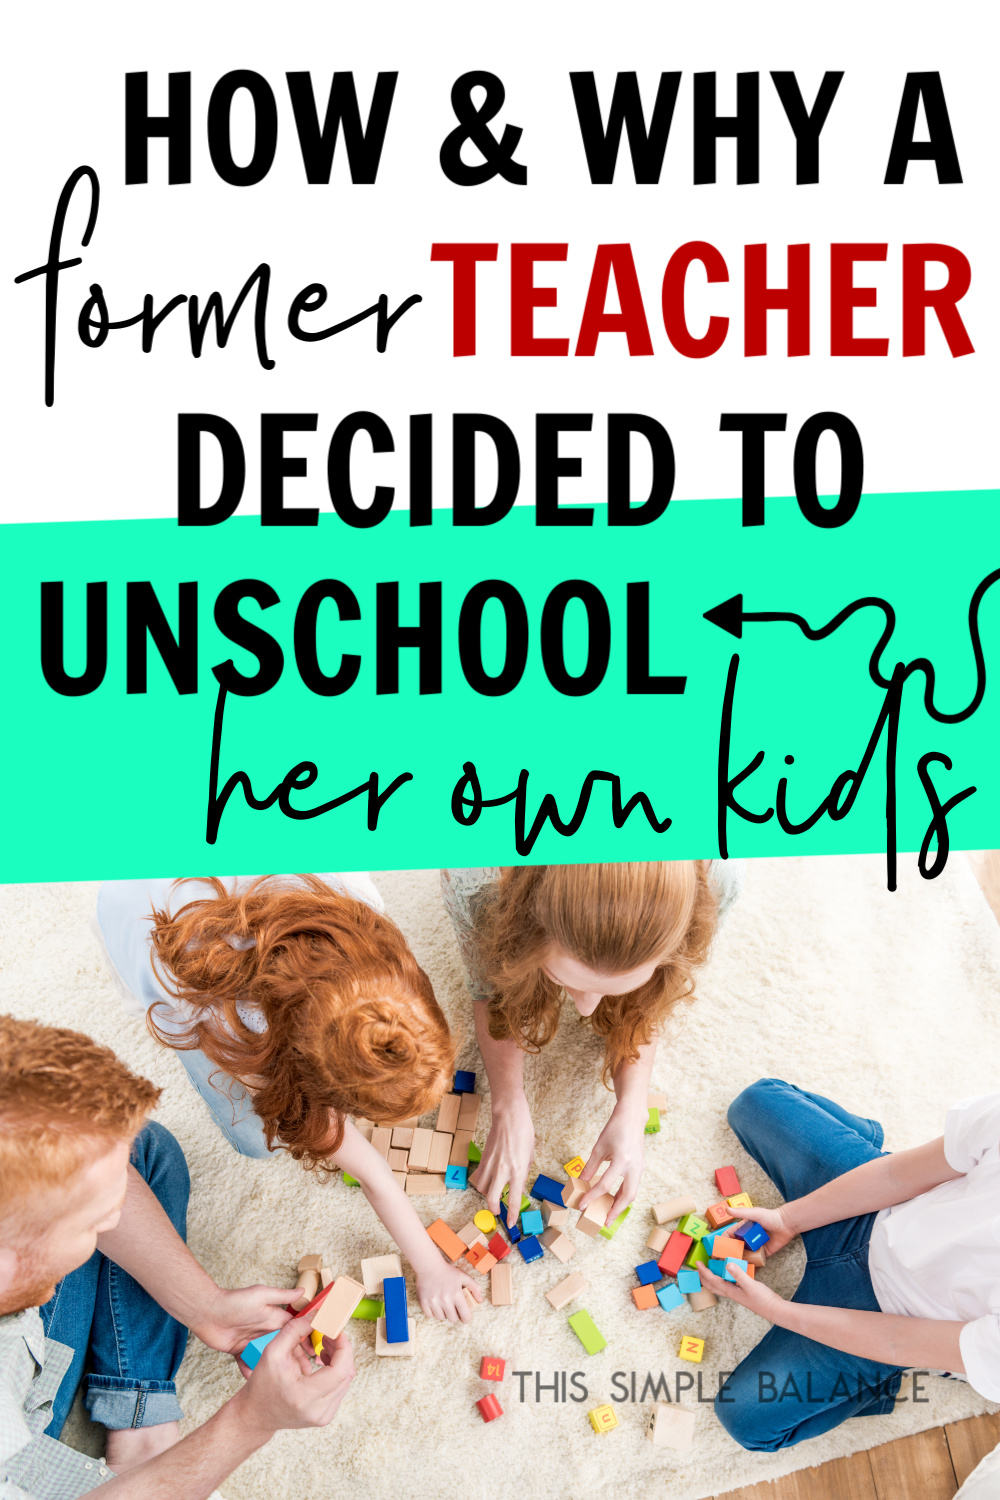 Unschooling: Why a Former Teacher Decided Unschooling was the best educational choice for her own kids